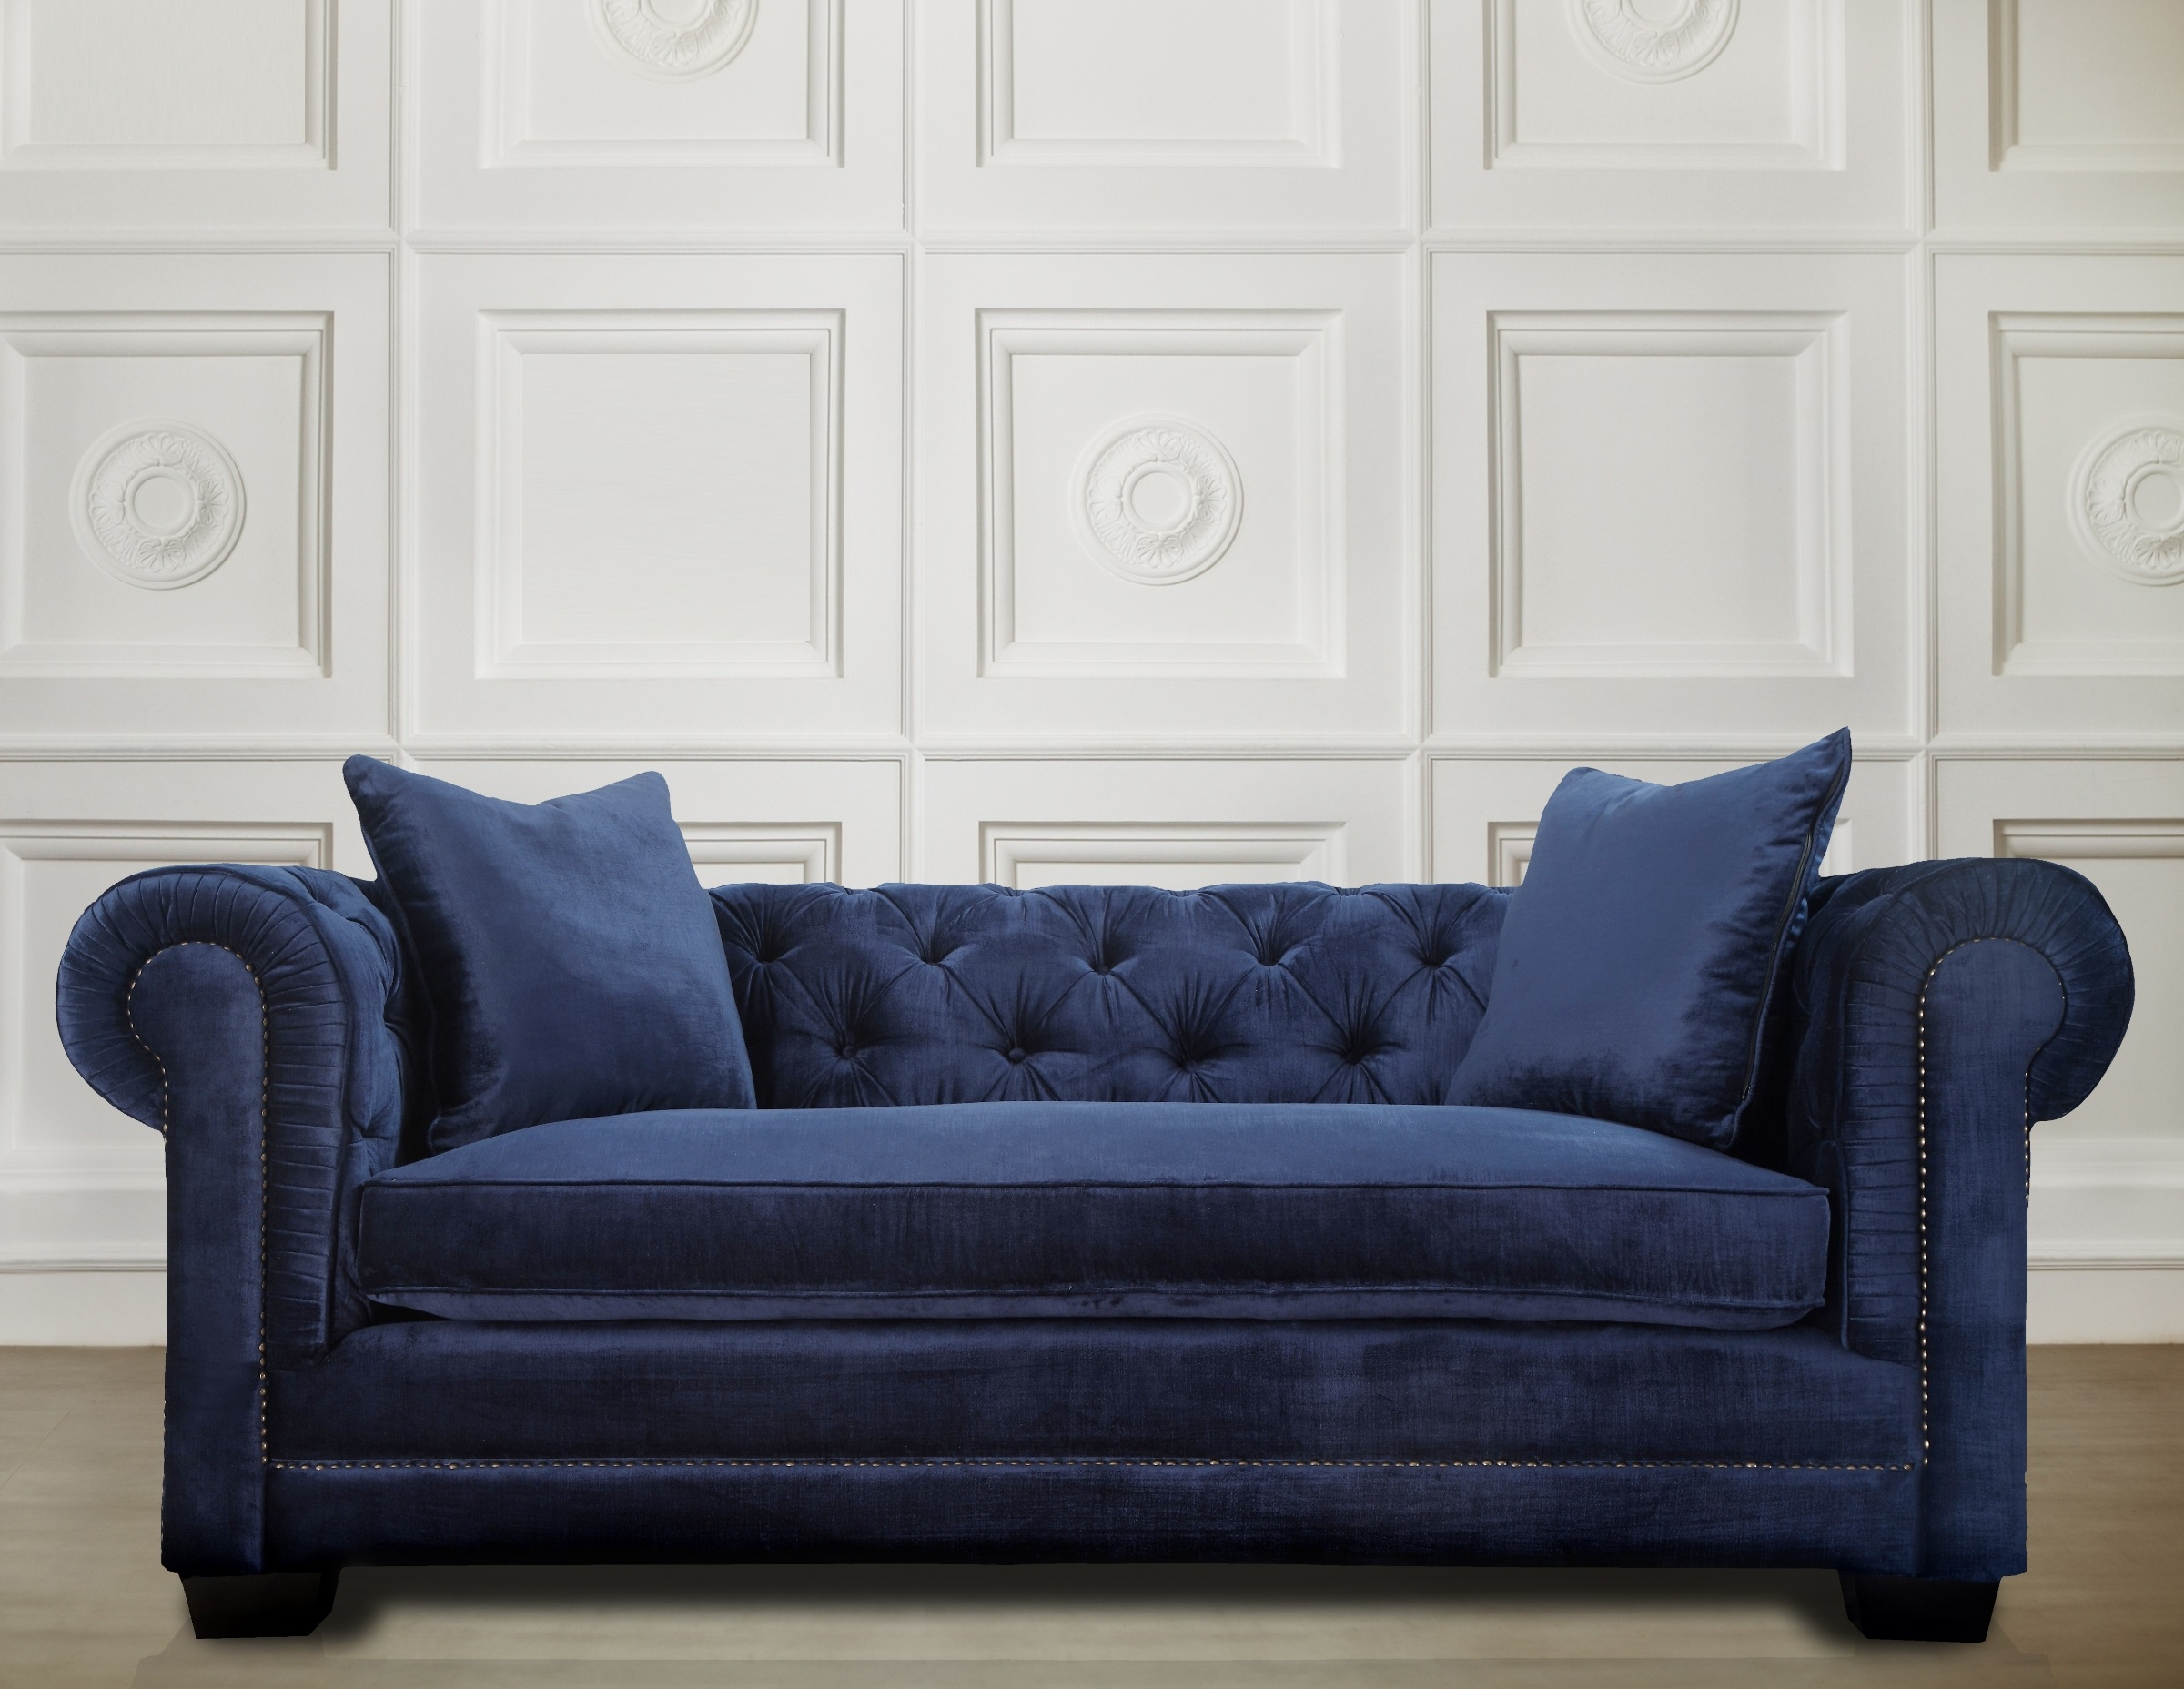 Stylish Blue Velvet Sofa